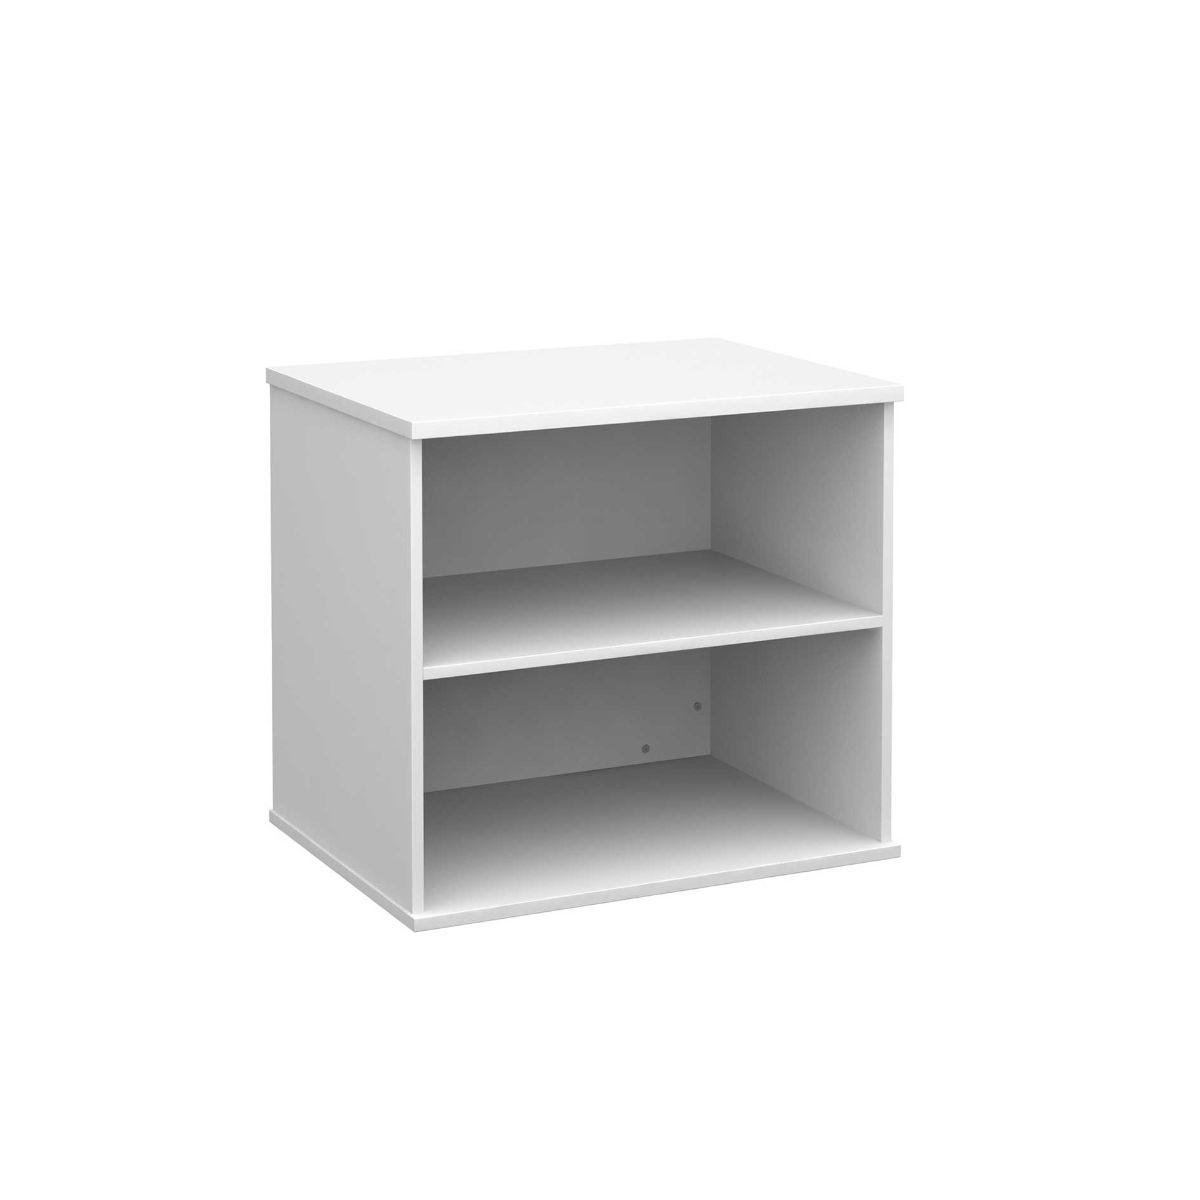 Desk High Bookcase with 1 Shelf, White